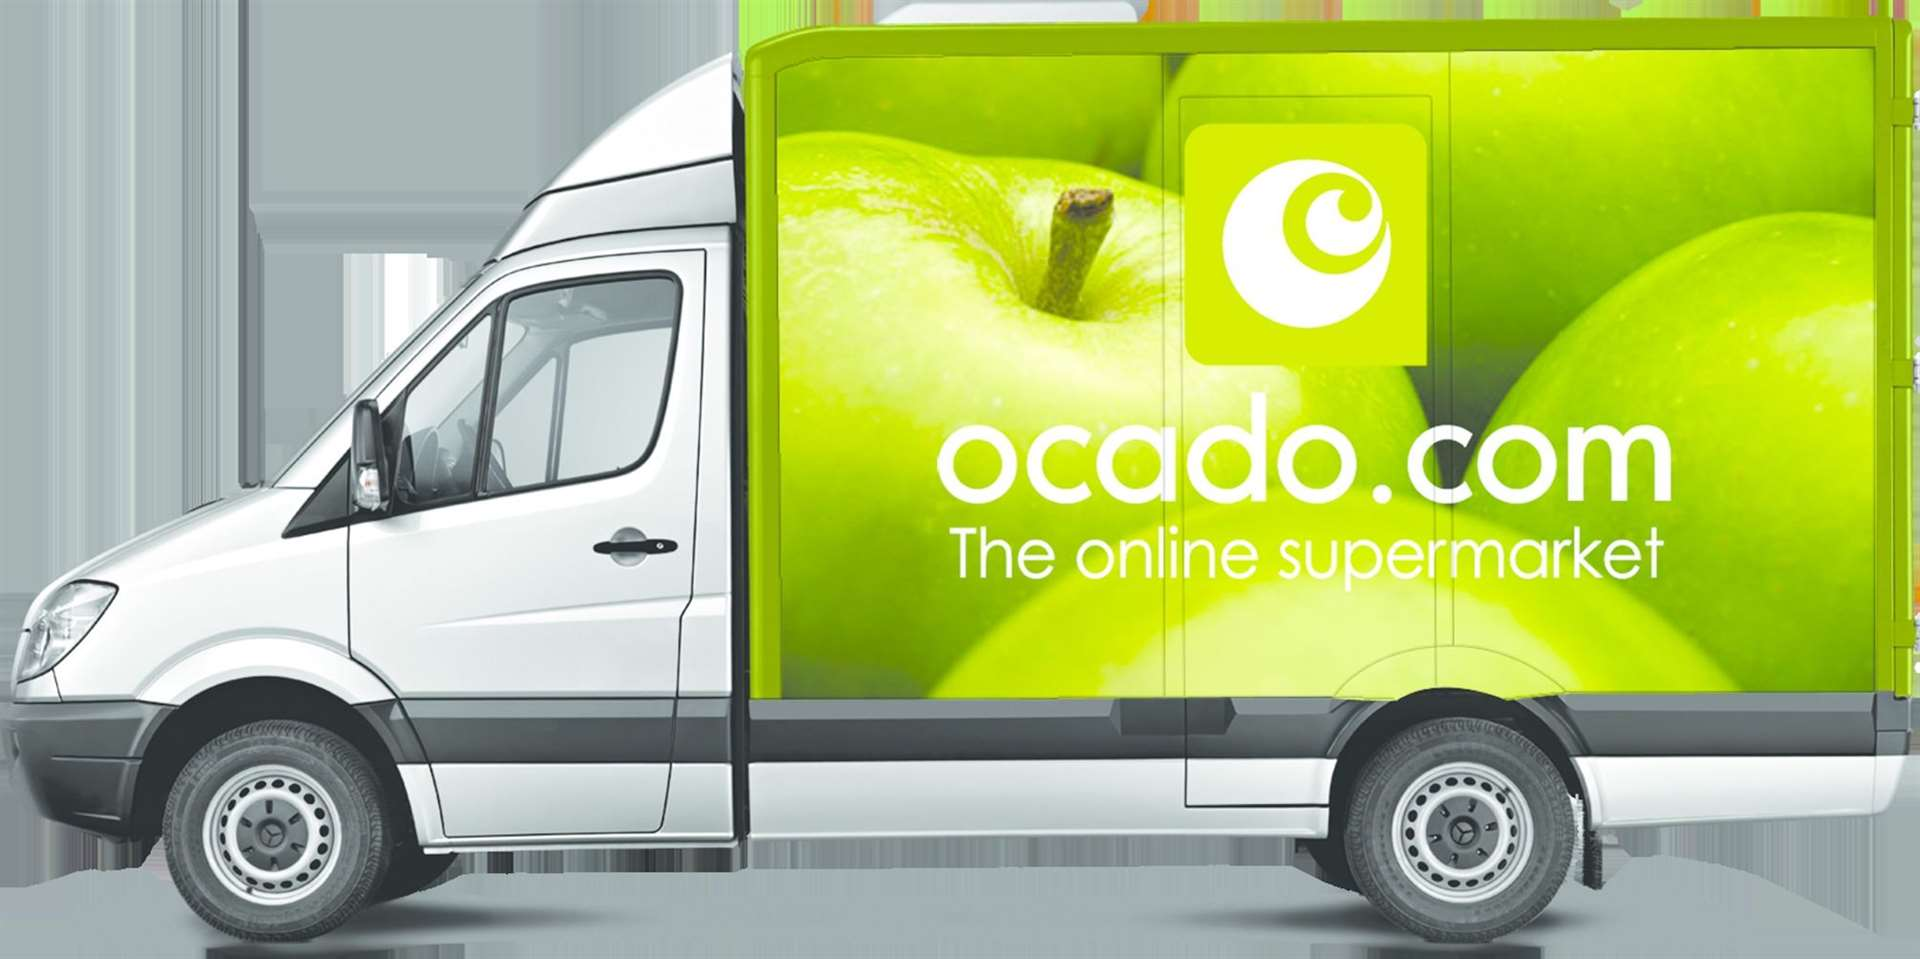 Ocado saw a huge surge in demand during 2020